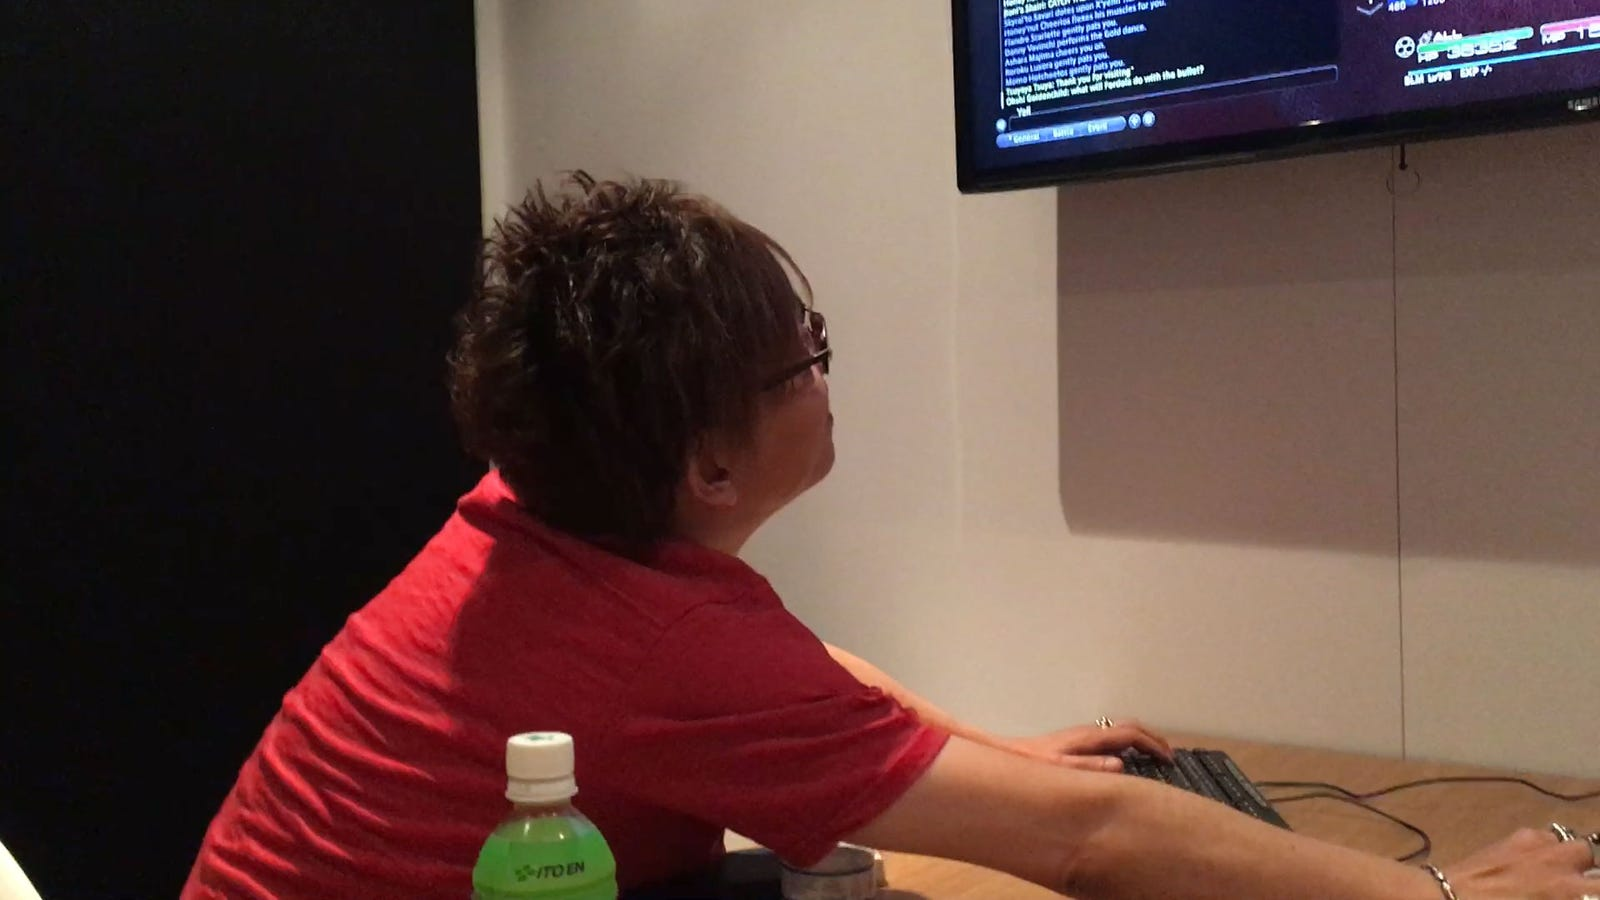 Final Fantasy XIV Director Plays Final Fantasy XIV, Gets Mobbed By Fans